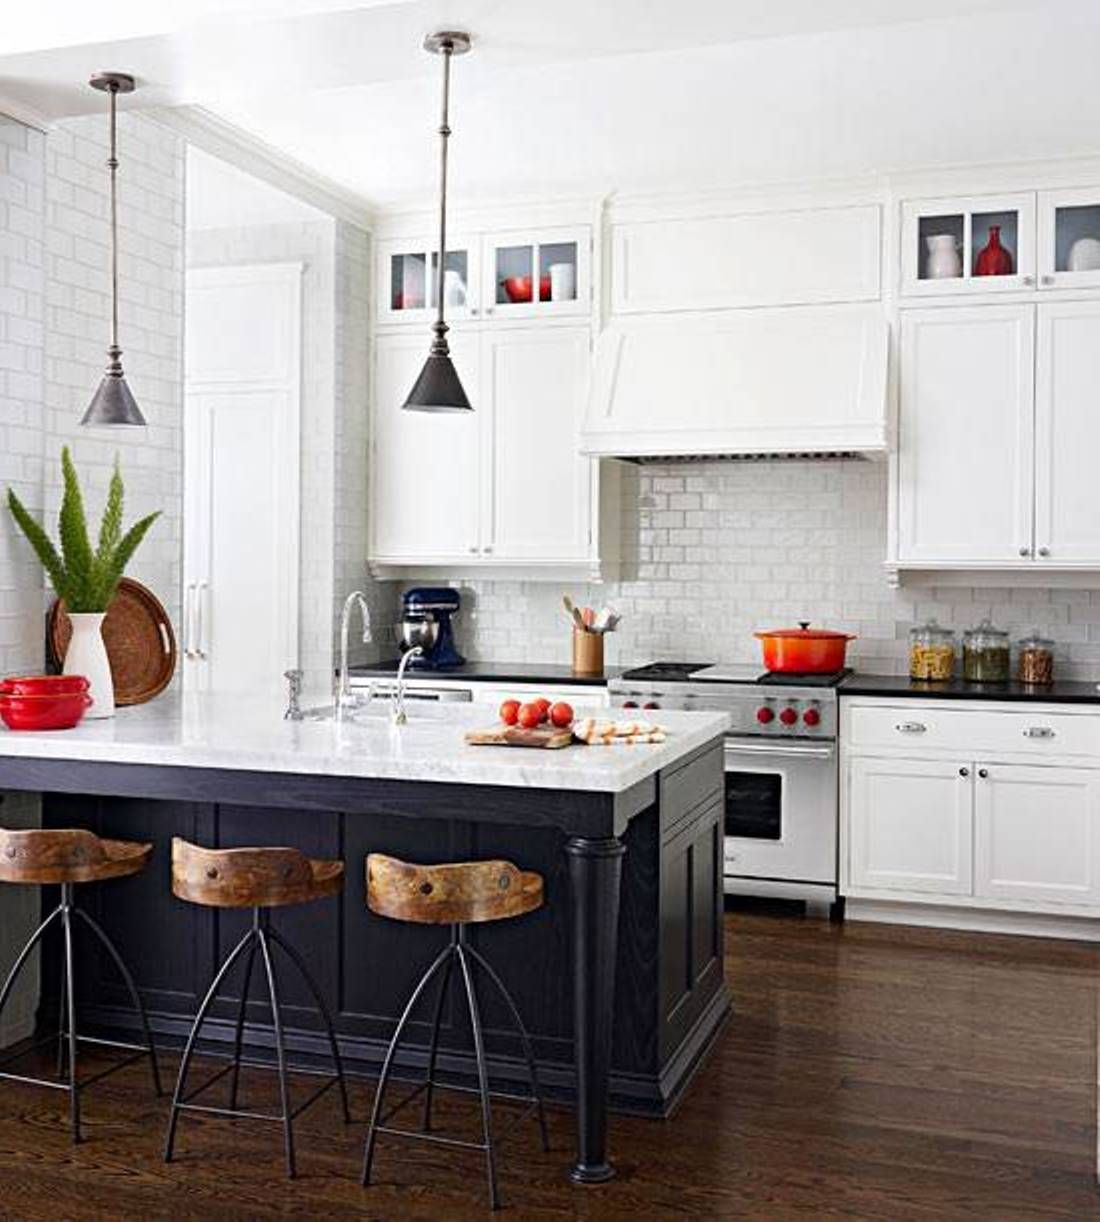 Kitchen Floor Plans For Small Kitchens Nice Kitchen Ideas Kitchen Layout Island Kitchen Tiles